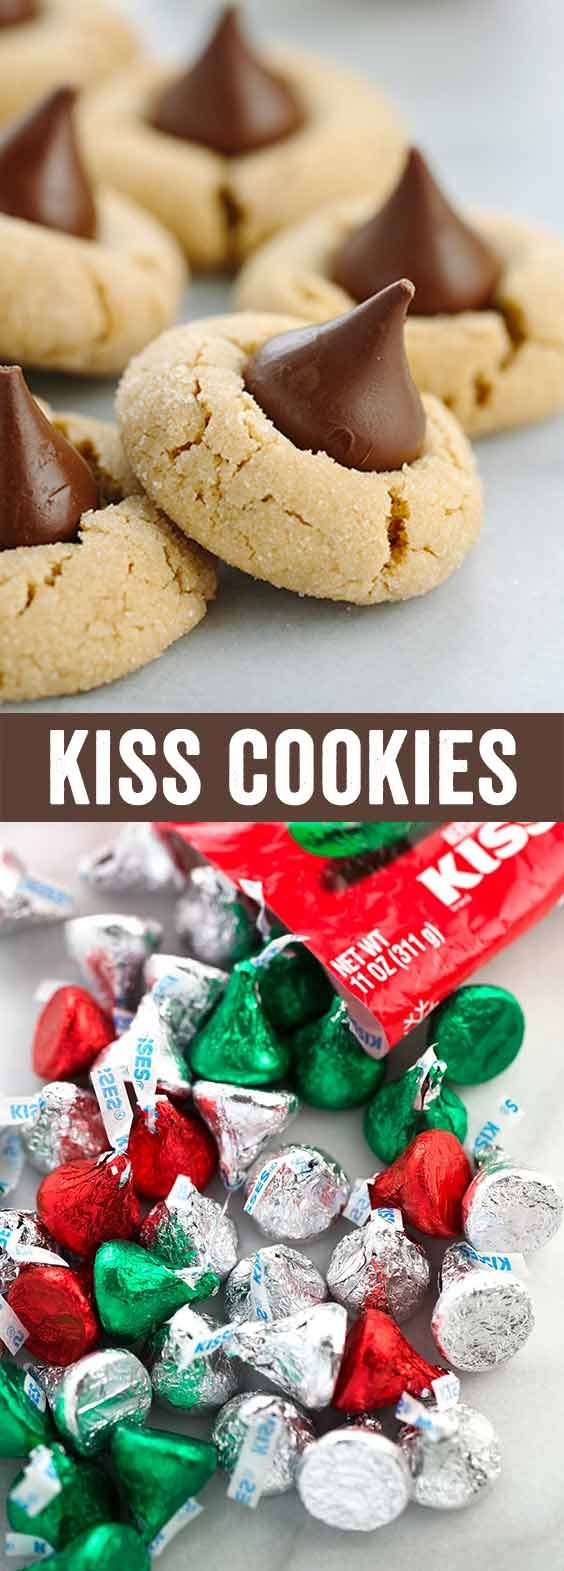 Classic Peanut Butter Kiss Cookies - a classic holiday tradition that everyone loves. Creamy peanut butter cookies are made special with milk Hershey's chocolate center.  via @foodiegavin